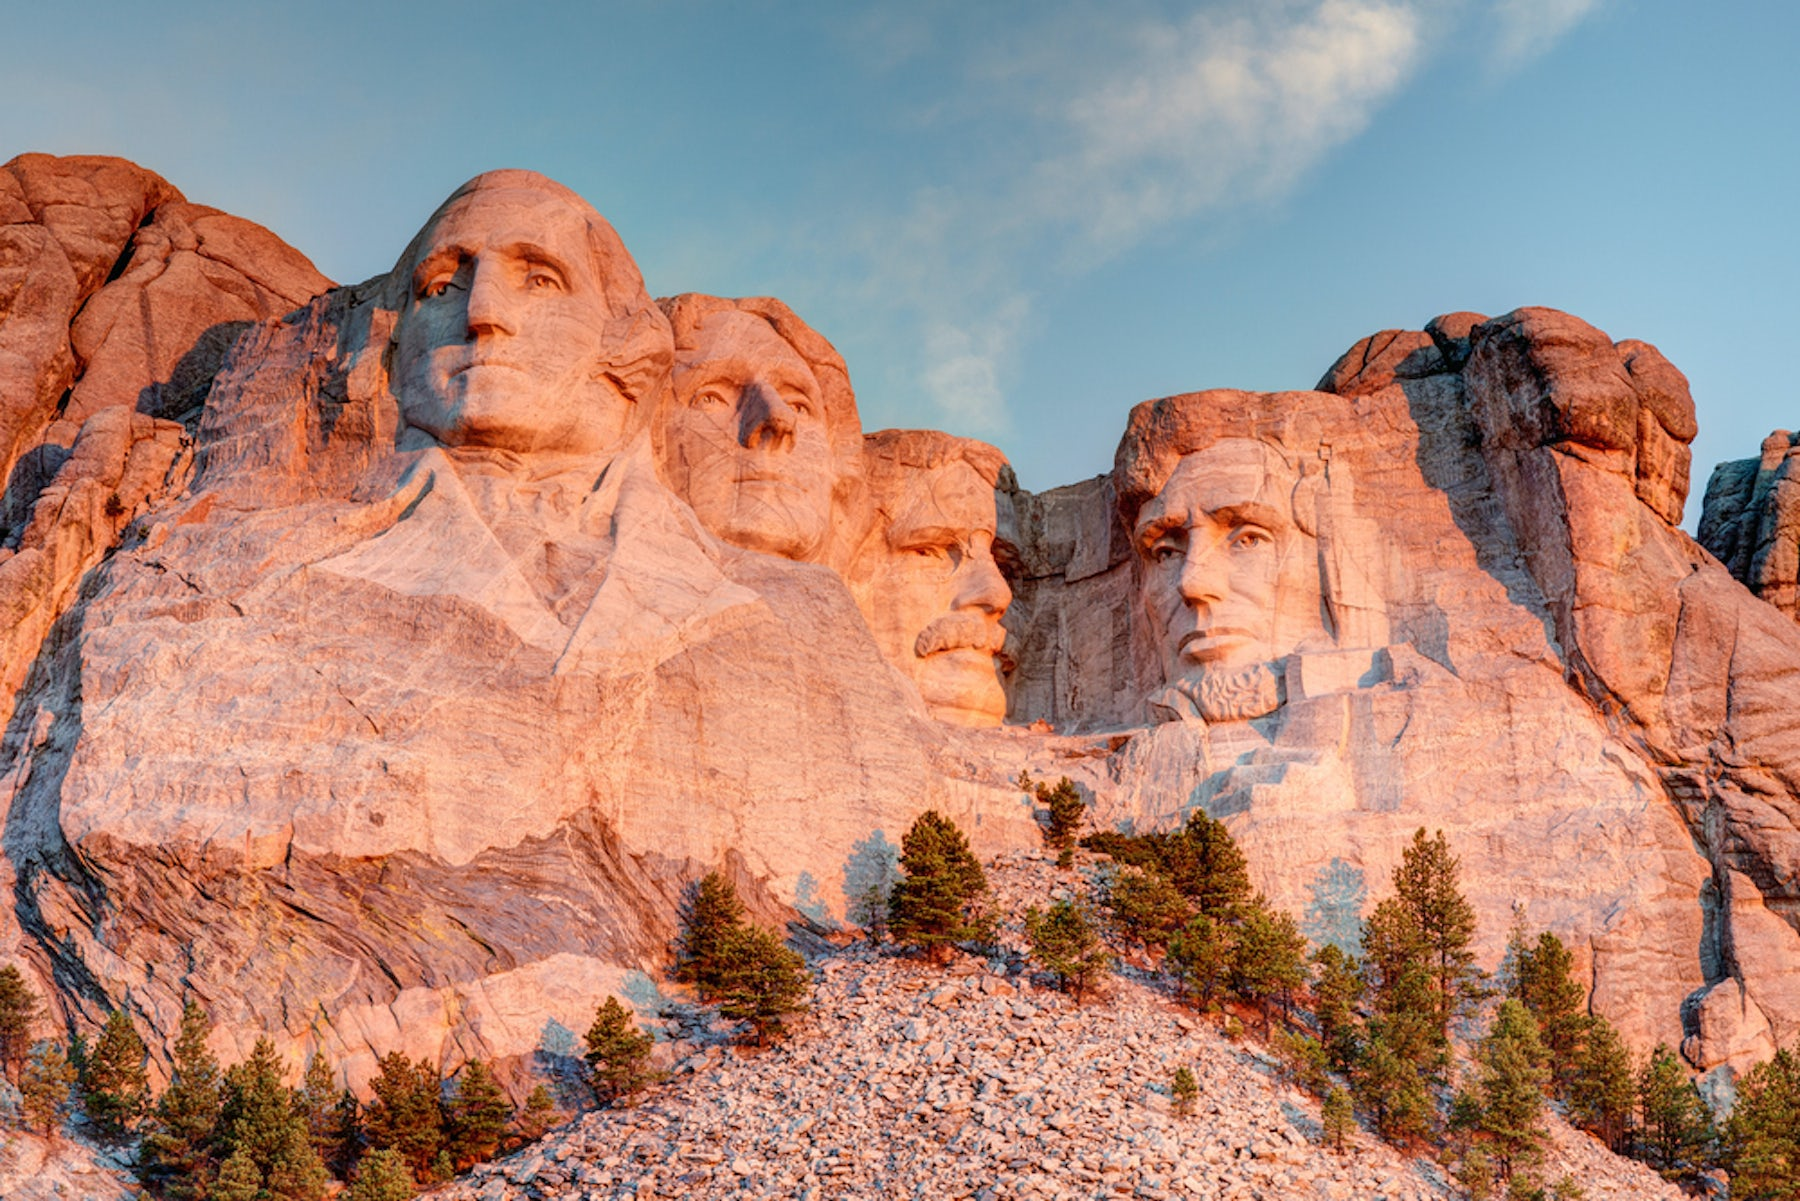 Mount Rushmore, South Dakota | Source: Shutterstock